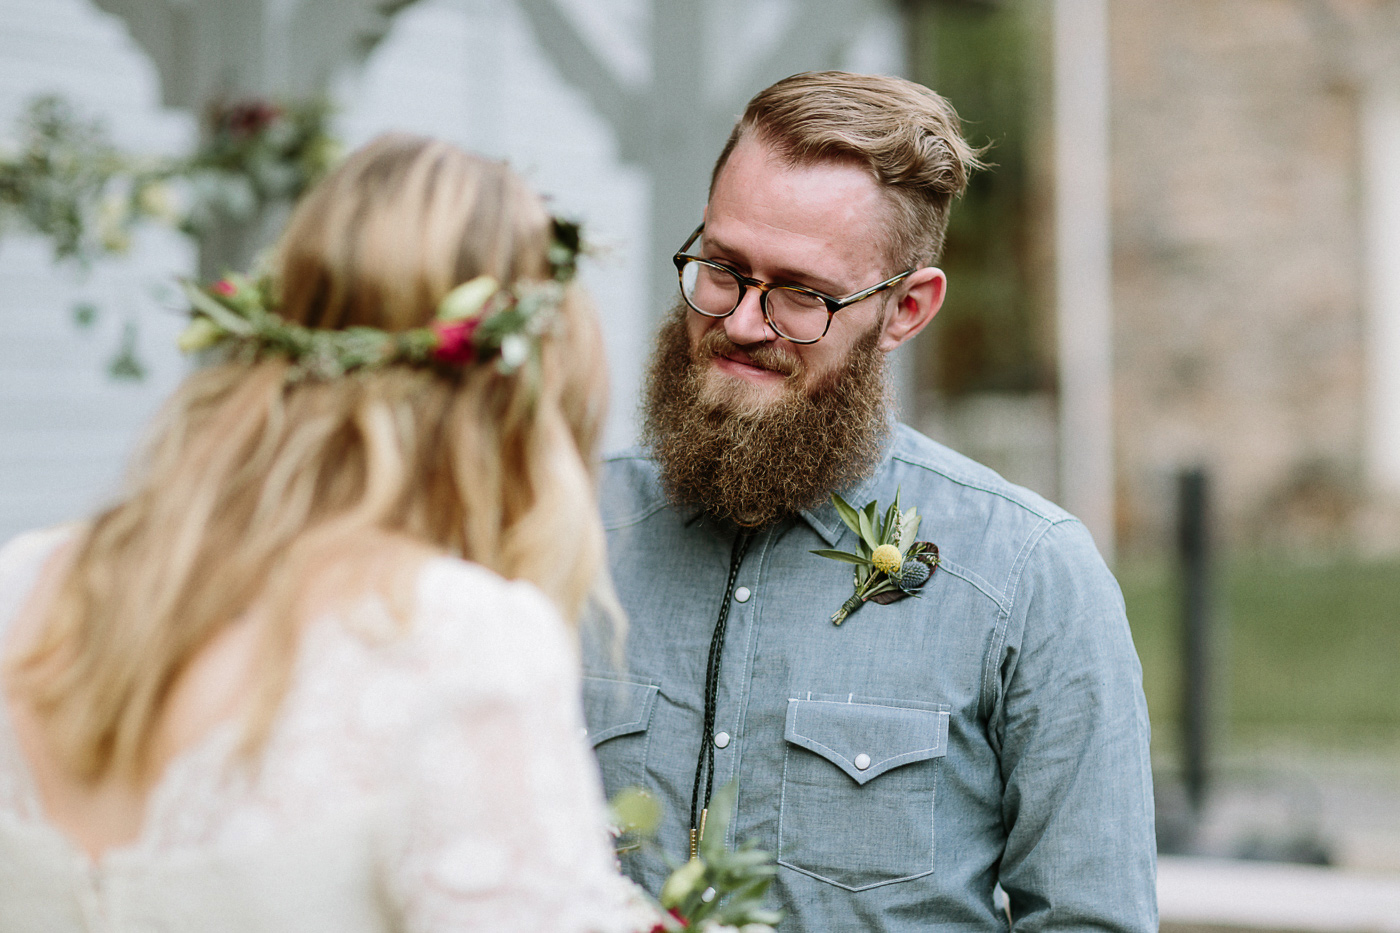 Groom smiling through tears during vows